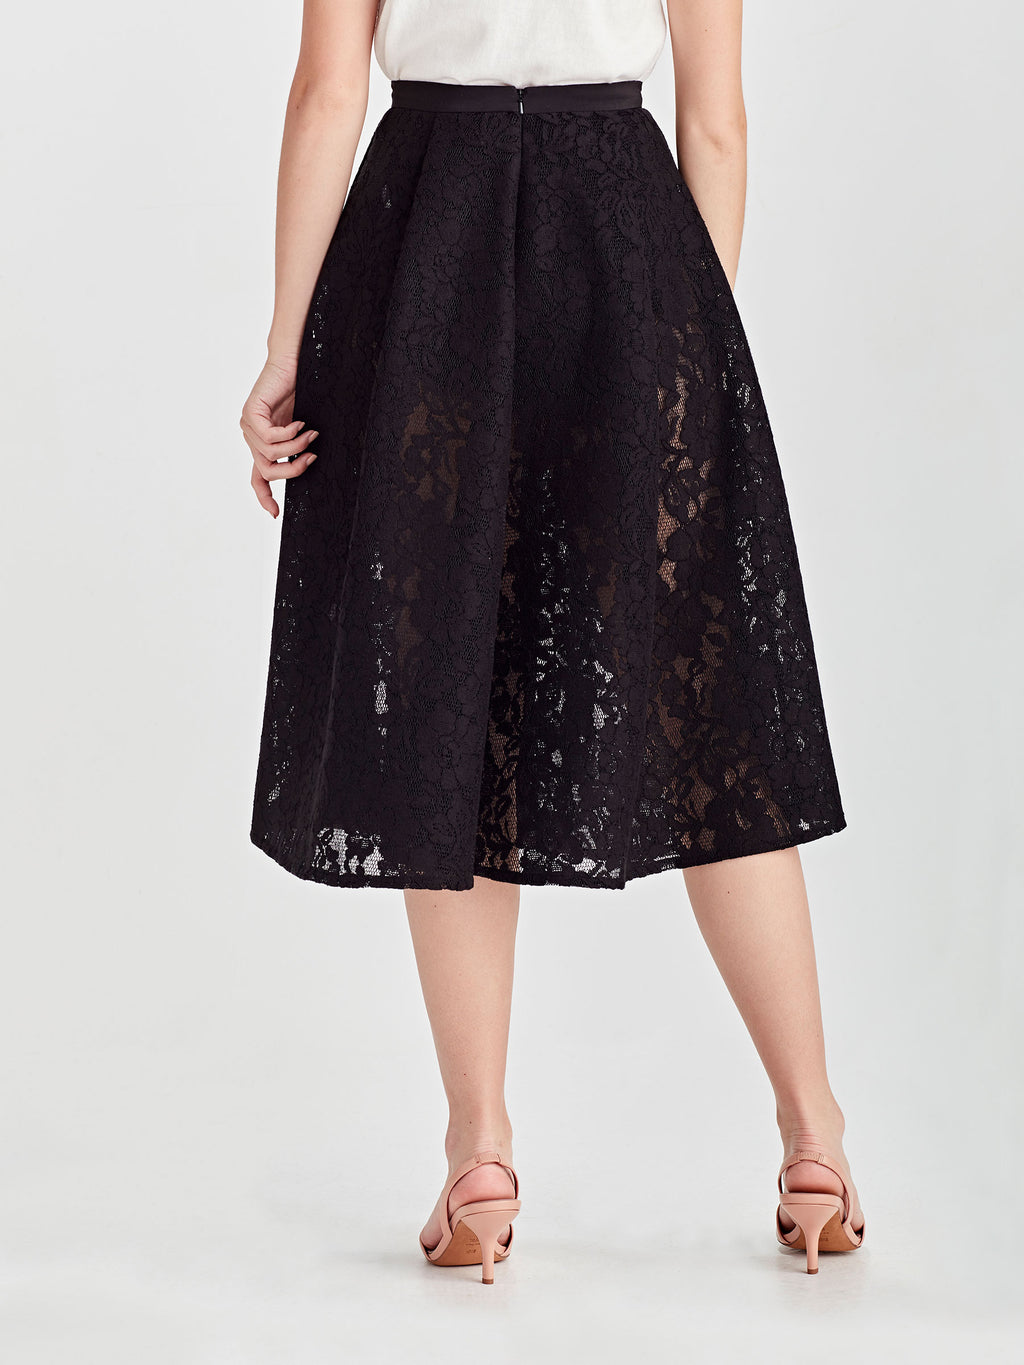 Blair Skirt (Scuba Lace) Black Lace